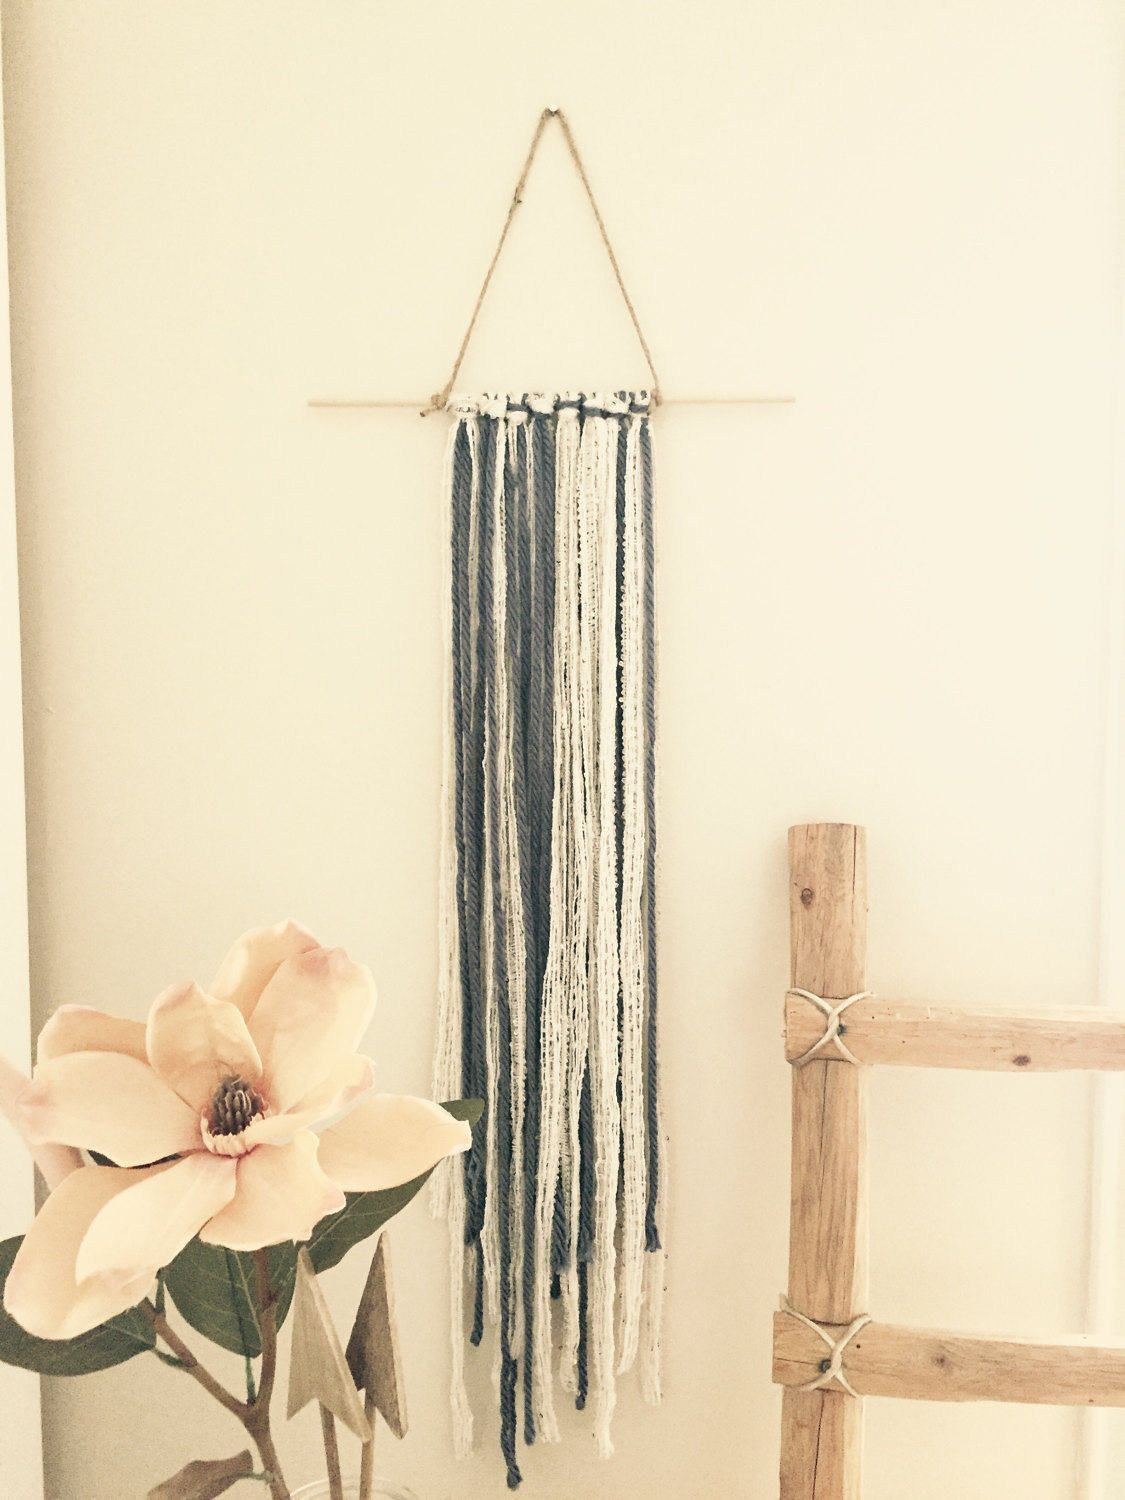 Blue moon boho wall hanging wall tapestry bohemian decor bedroom